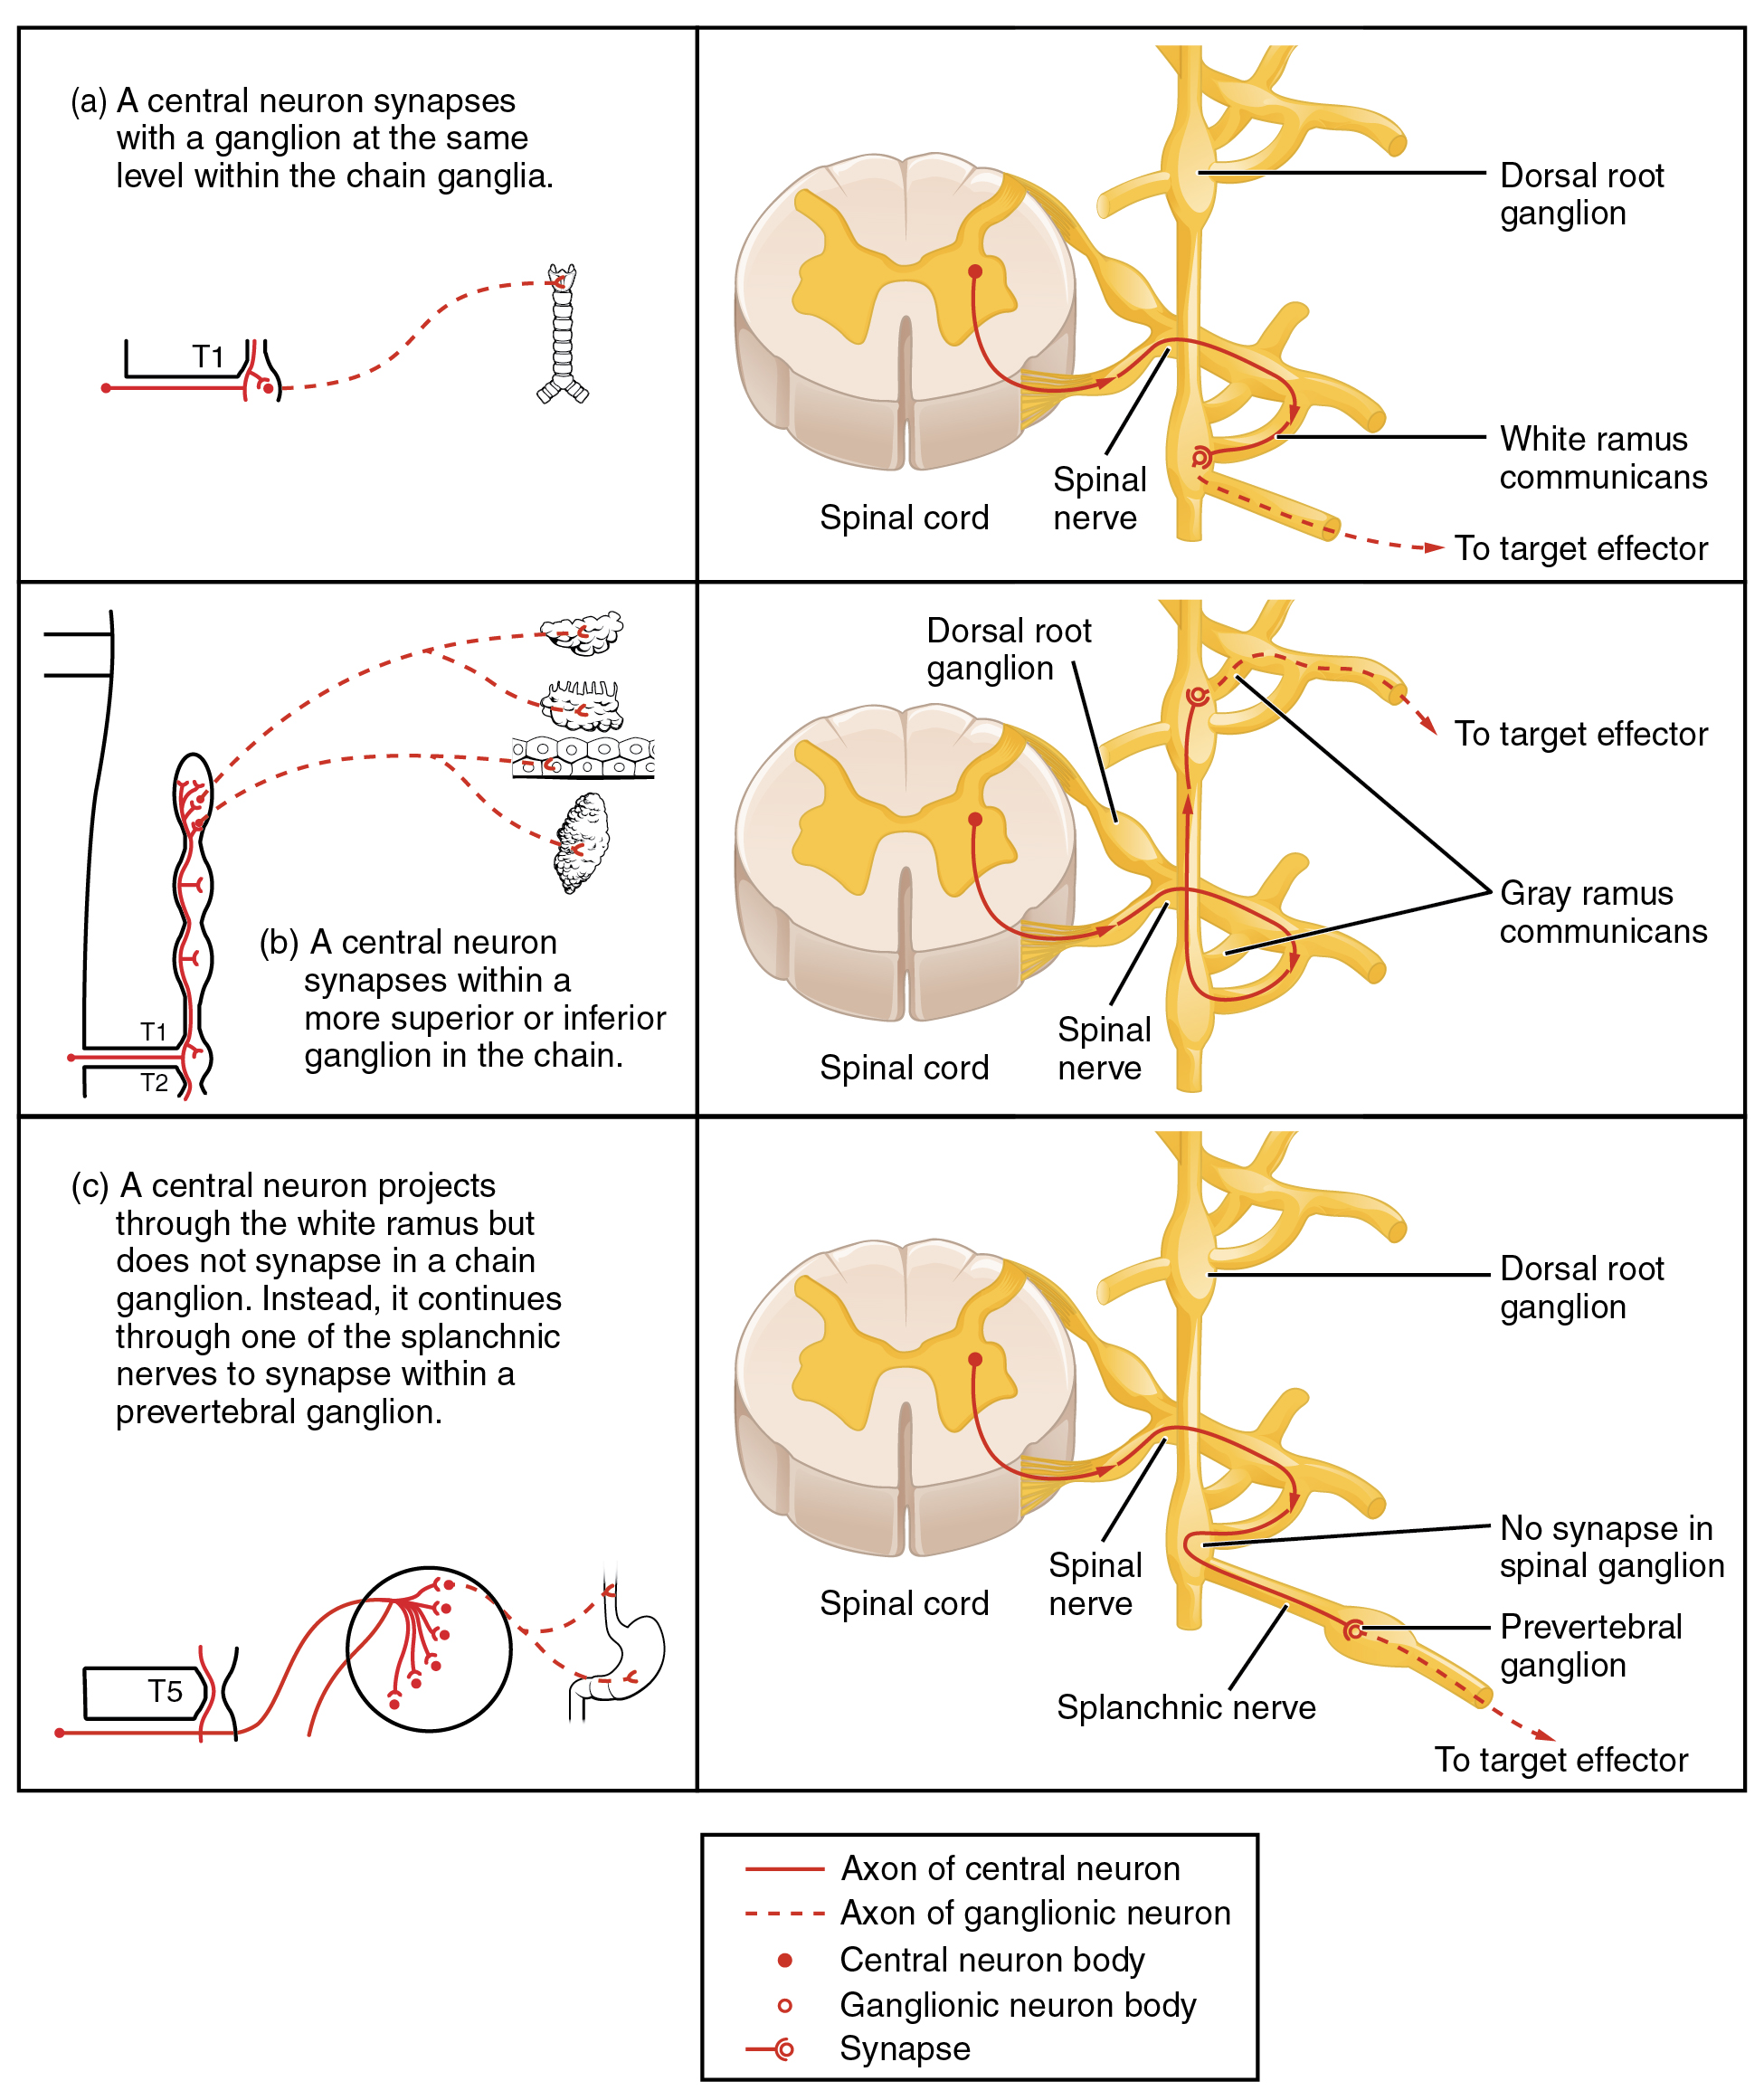 This table shows the connections between the spinal cord and the ganglia. The top panel shows the connection between a central neuron and a chain ganglion at the same lever. The center panel shows the connection between a central neuron and a synapse with a superior or inferior ganglion. The bottom panel shows the projection of a central neuron into the white ramus.